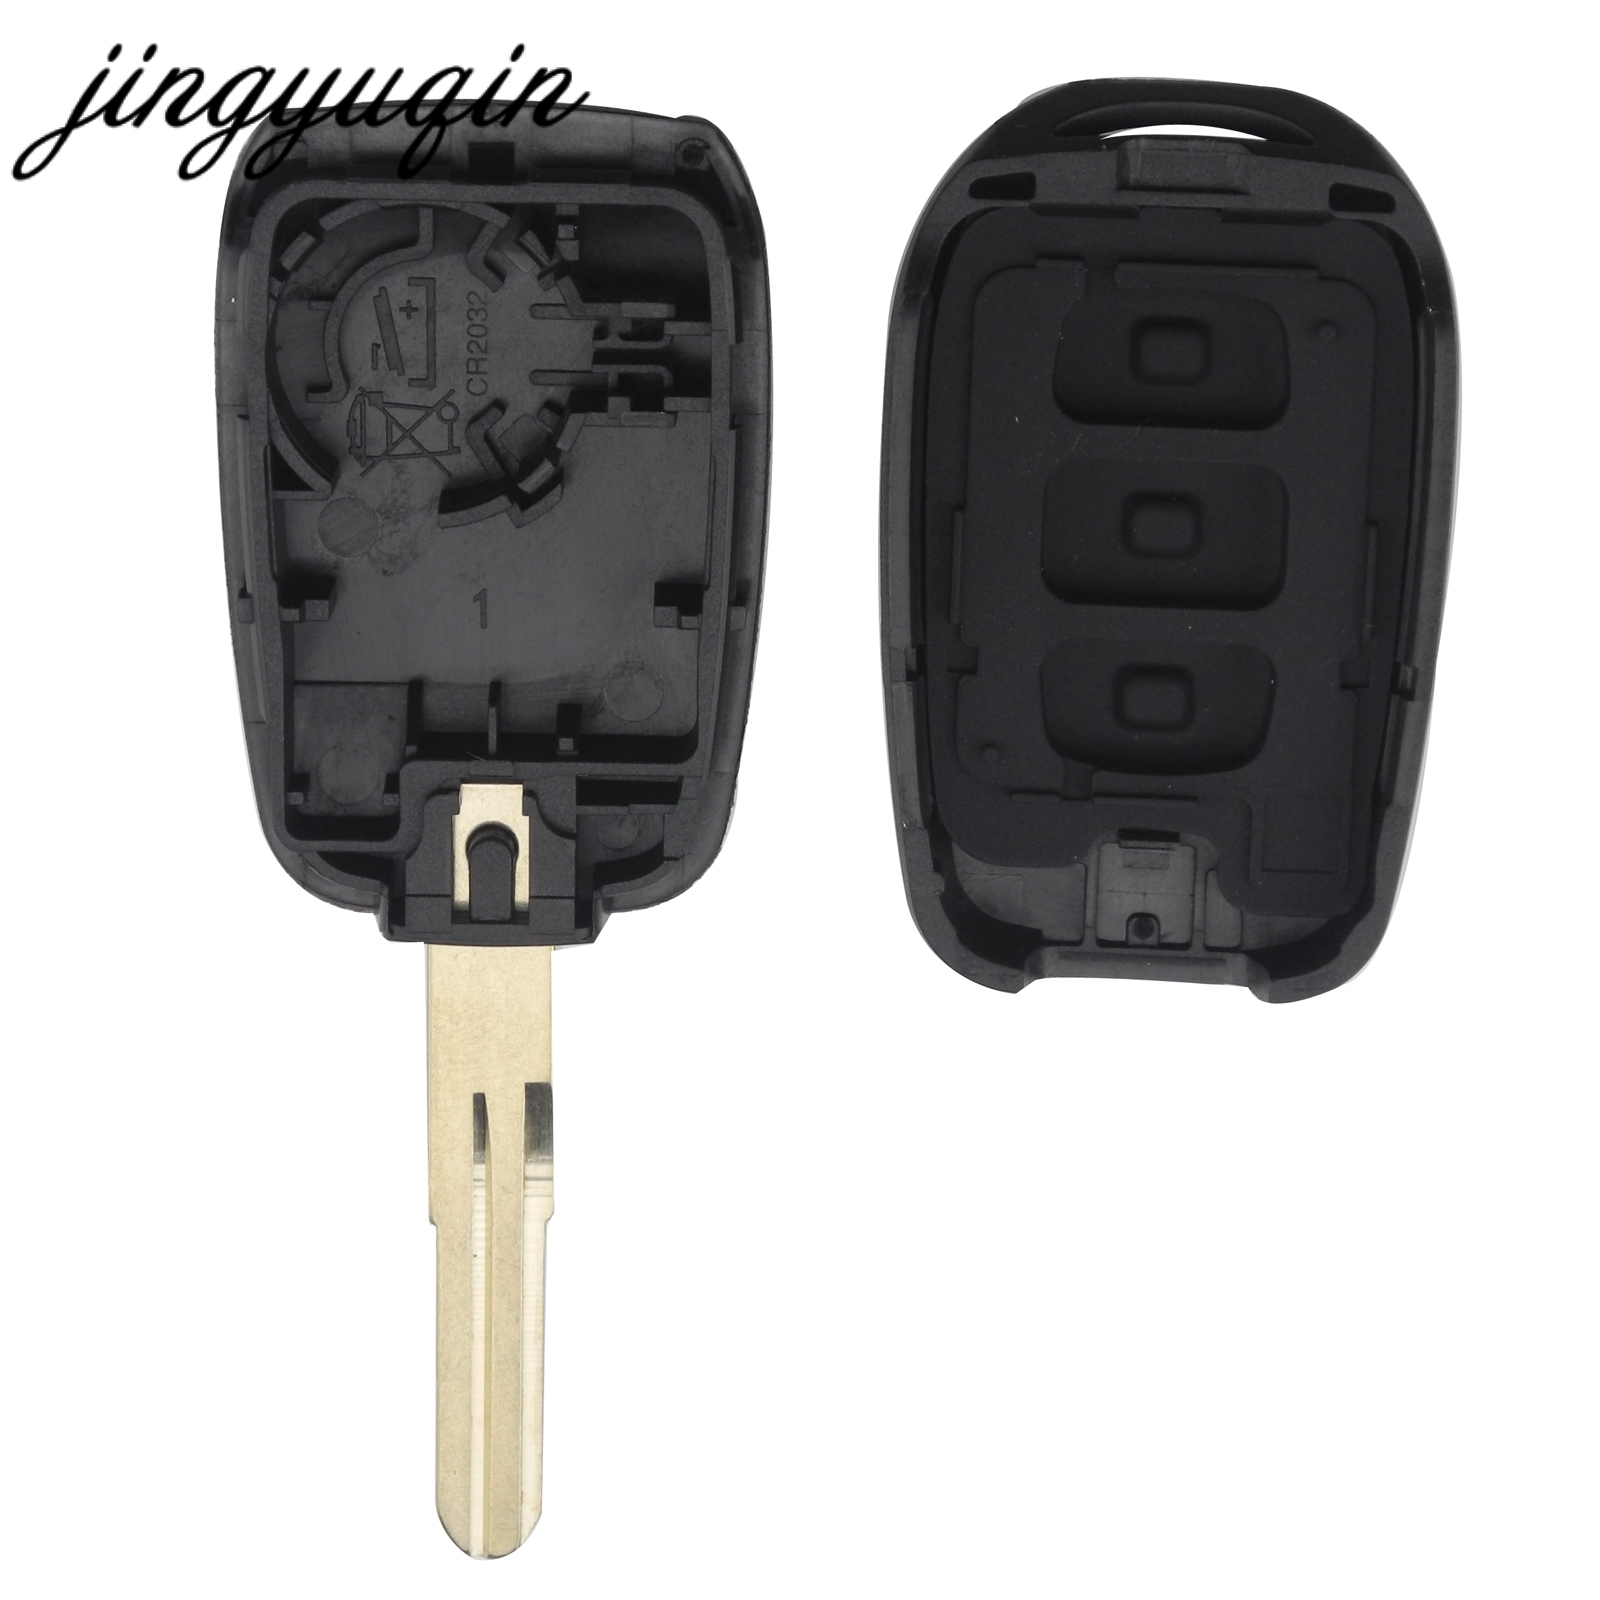 Jingyuqin 10pcs/lot 2/3 Button New Remote Key Shell For Renault Duster Key Fob Case Cover Replacement